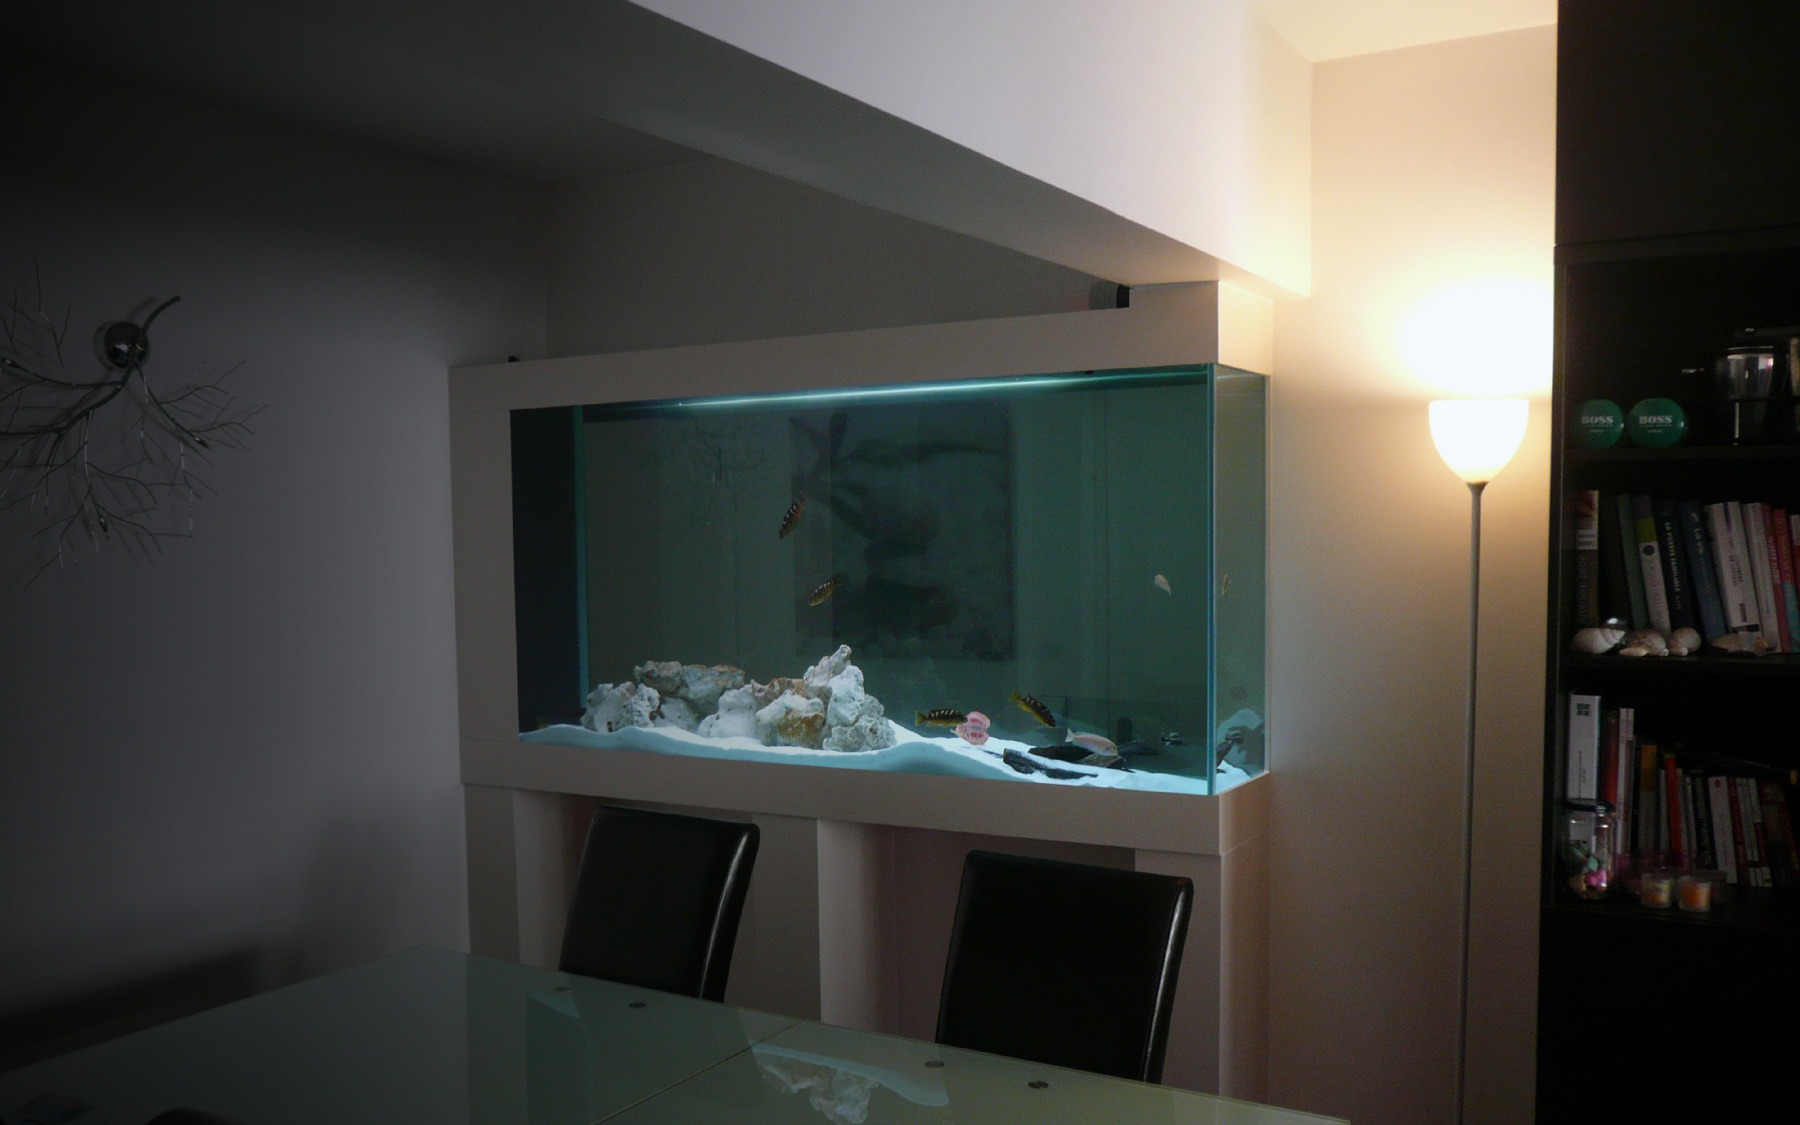 Aquarium d interieur design fabulous duaquarium design for Aquarium interieur